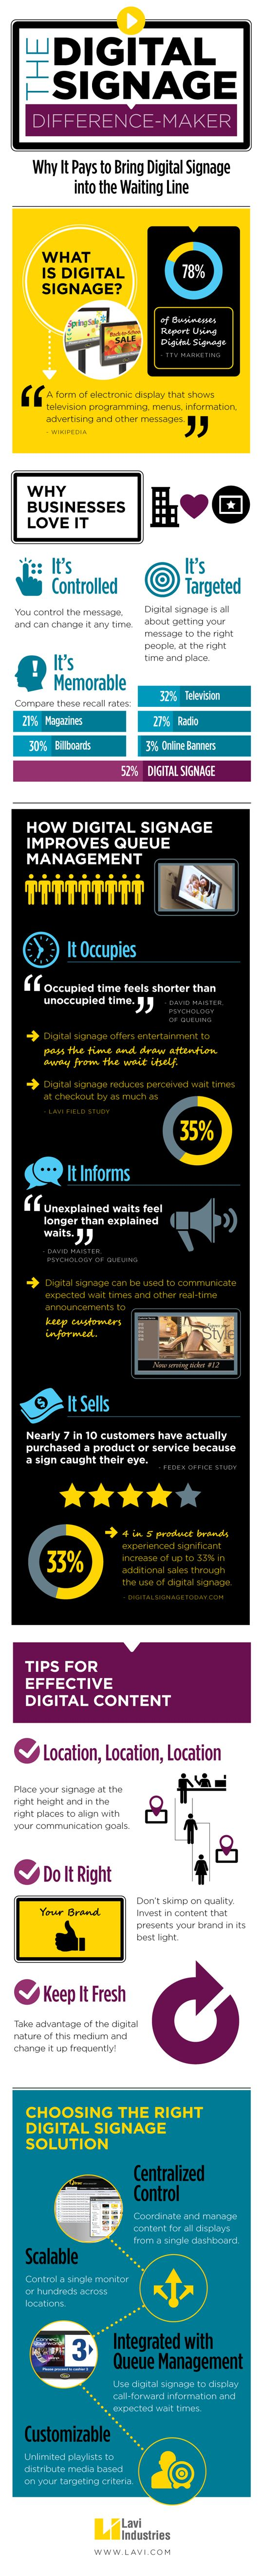 Digital Signage in the waiting line.  Why should you look at this?  Want to increase sales? That's why.